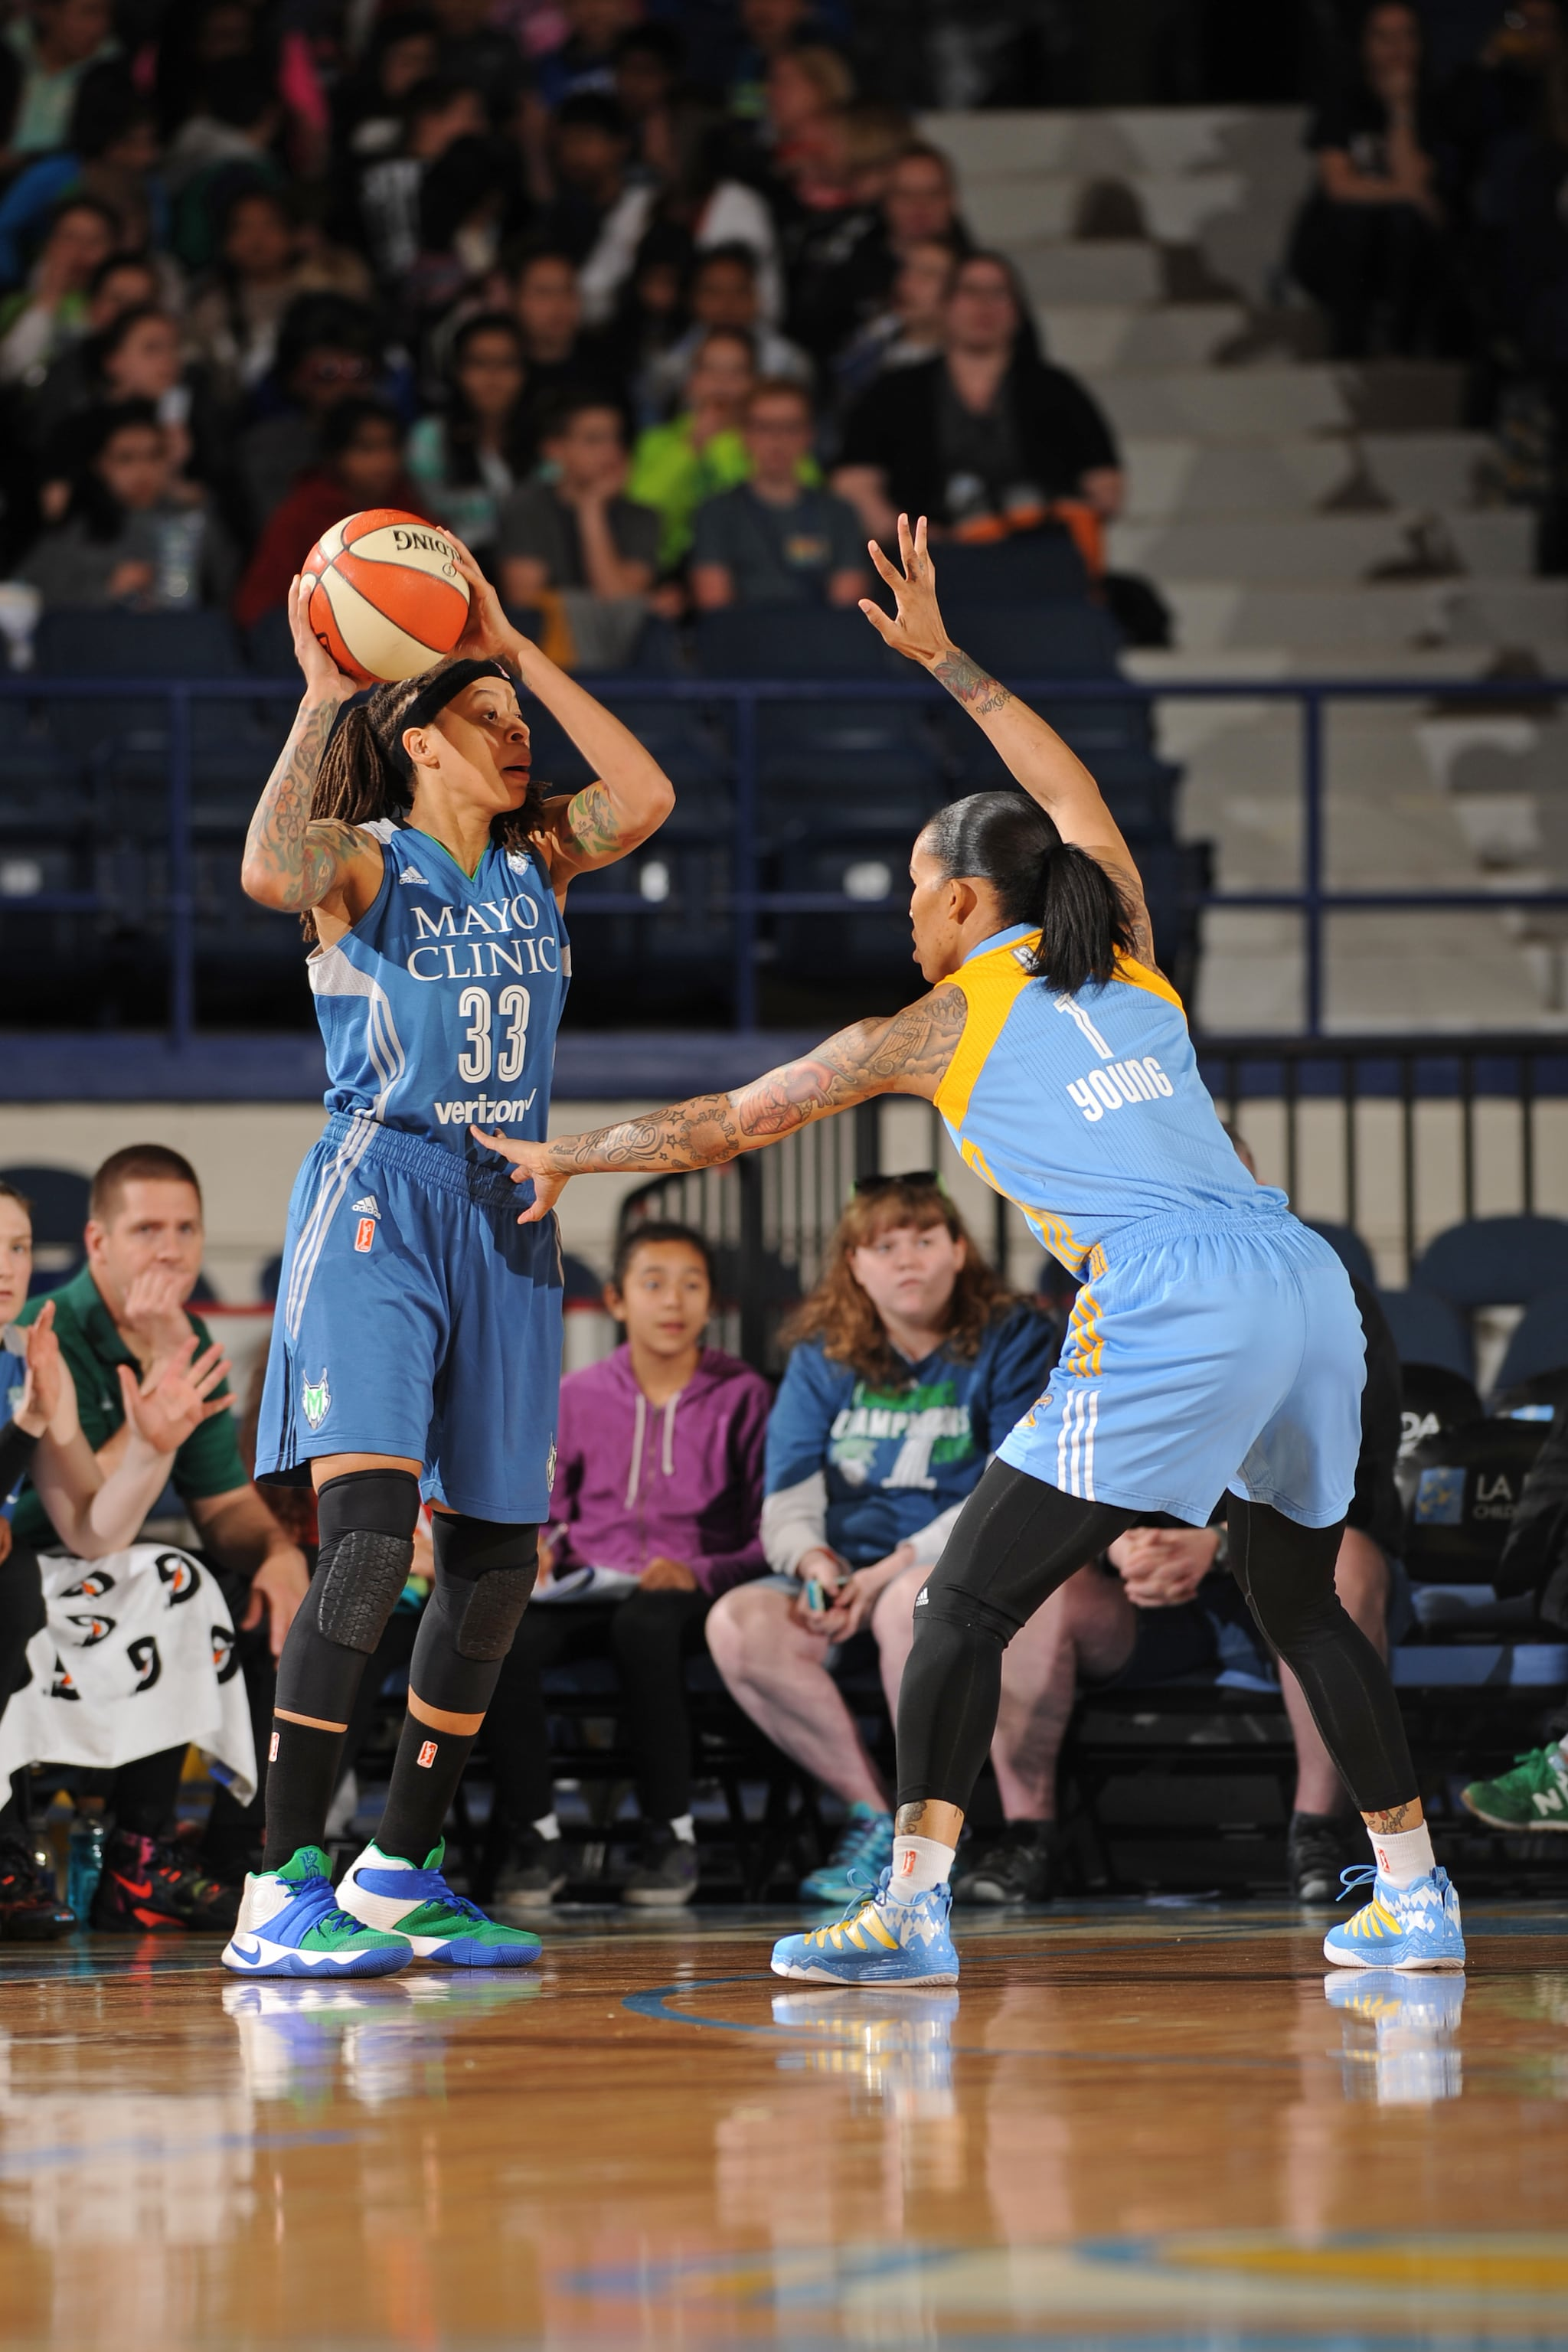 ROSEMONT, IL- MAY 18: Seimone Augustus #33 of the Minnesota Lynx looks to pass the ball against the Chicago Sky on May 18, 2016 at the Allstate Arena in Rosemont, Illinois. NOTE TO USER: User expressly acknowledges and agrees that, by downloading and/or using this photograph, user is consenting to the terms and conditions of the Getty Images License Agreement. Mandatory Copyright Notice: Copyright 2016 NBAE (Photo by Randy Belice/NBAE via Getty Images)